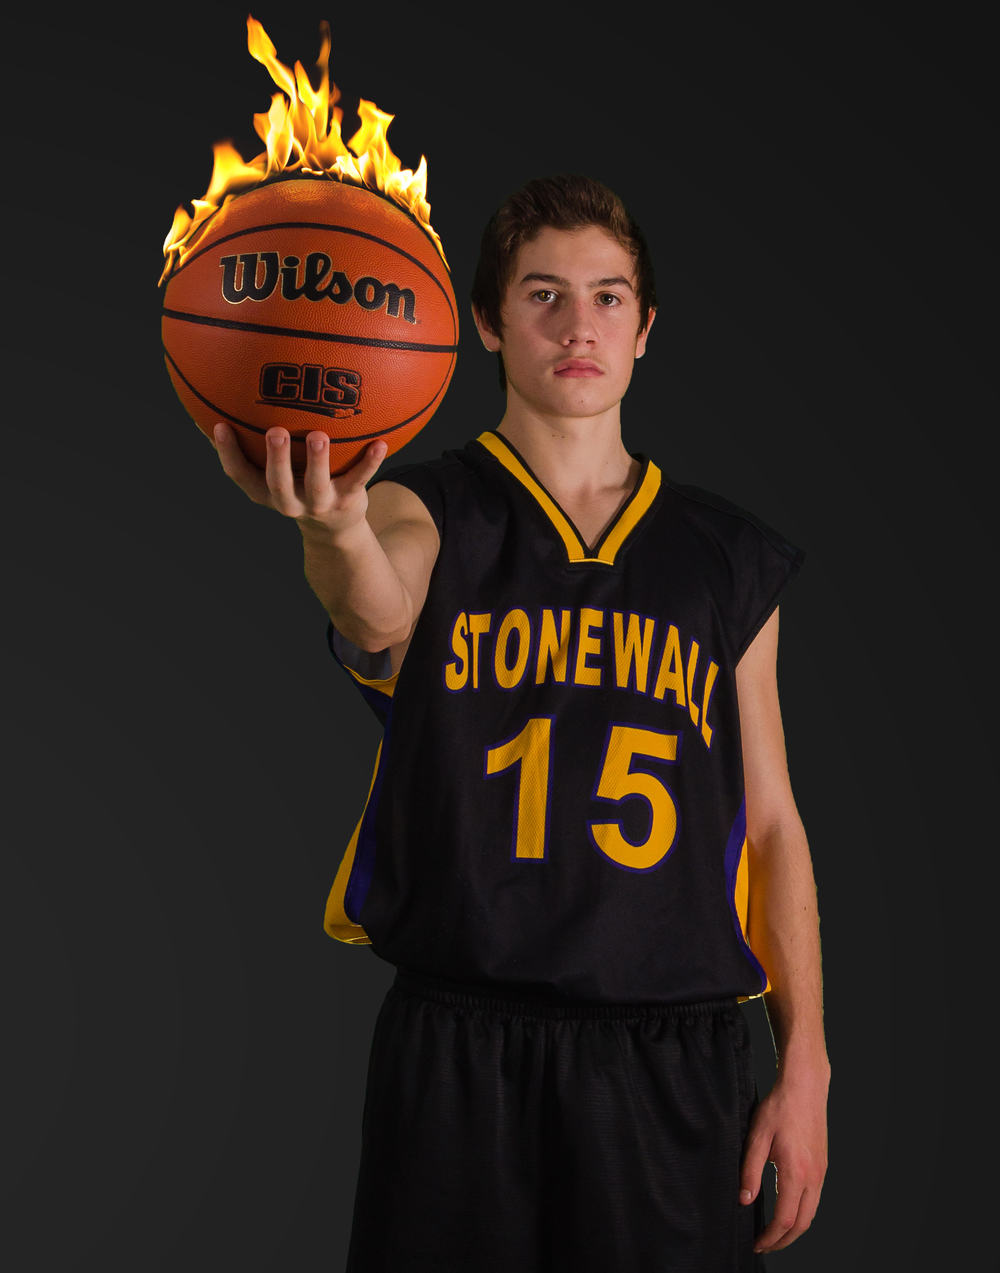 taylor-sheppard-photographer-stonewall-basketball-portrait-commercial-photoshop-fire-ball.jpg